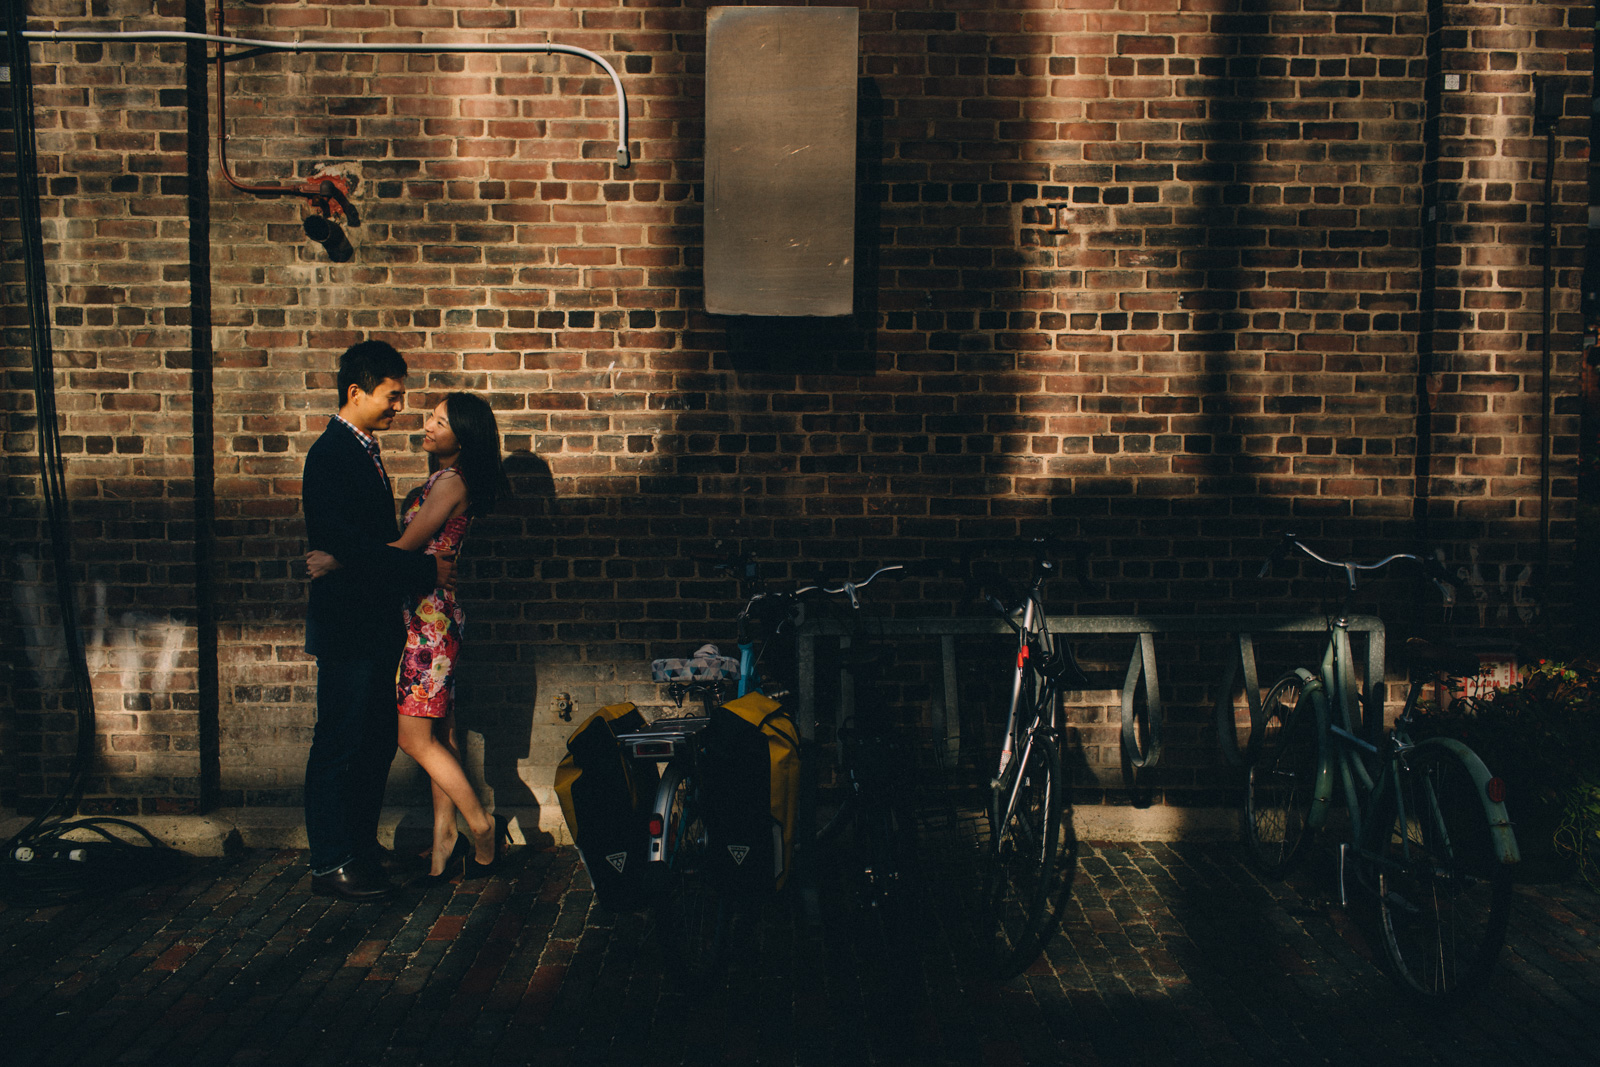 Distillery-District-engagement-photos-Toronto-wedding-photography-by-Sam-Wong-of-Artanis-Collective_002.jpg